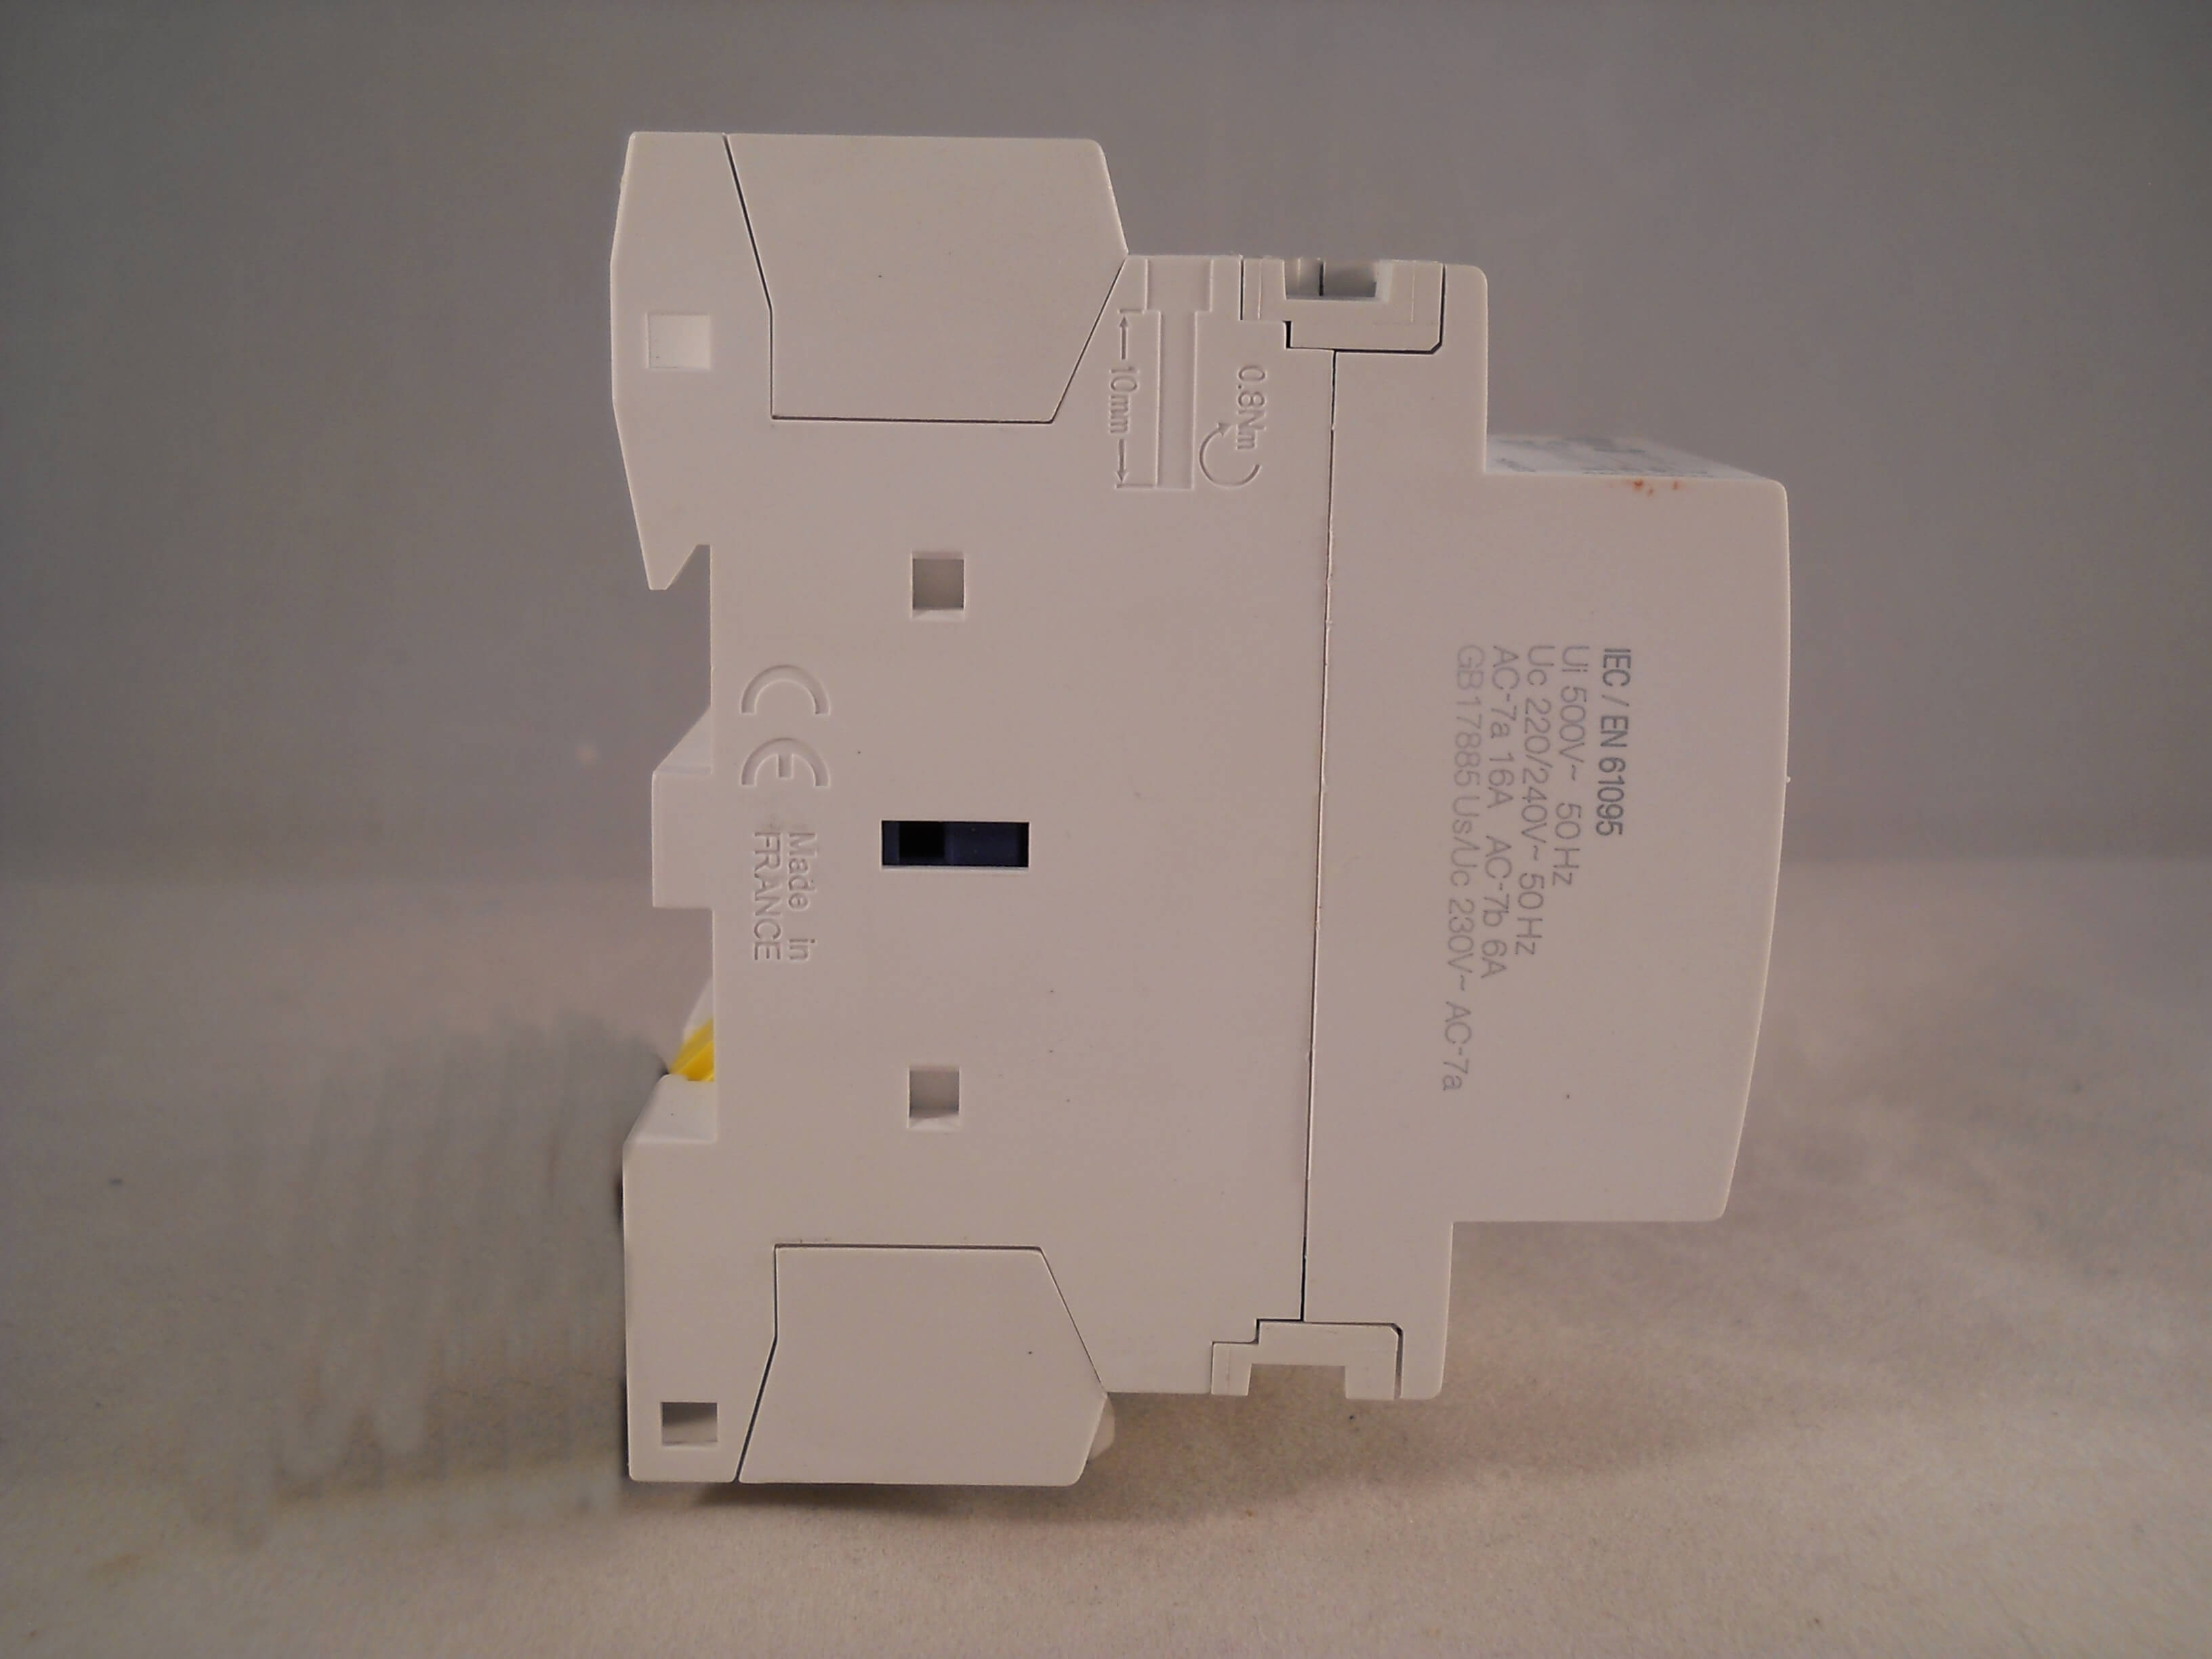 schneider ict 25a contactor wiring diagram kenmore elite dryer 16 amp 4 pole 240vac coil n o acti 9